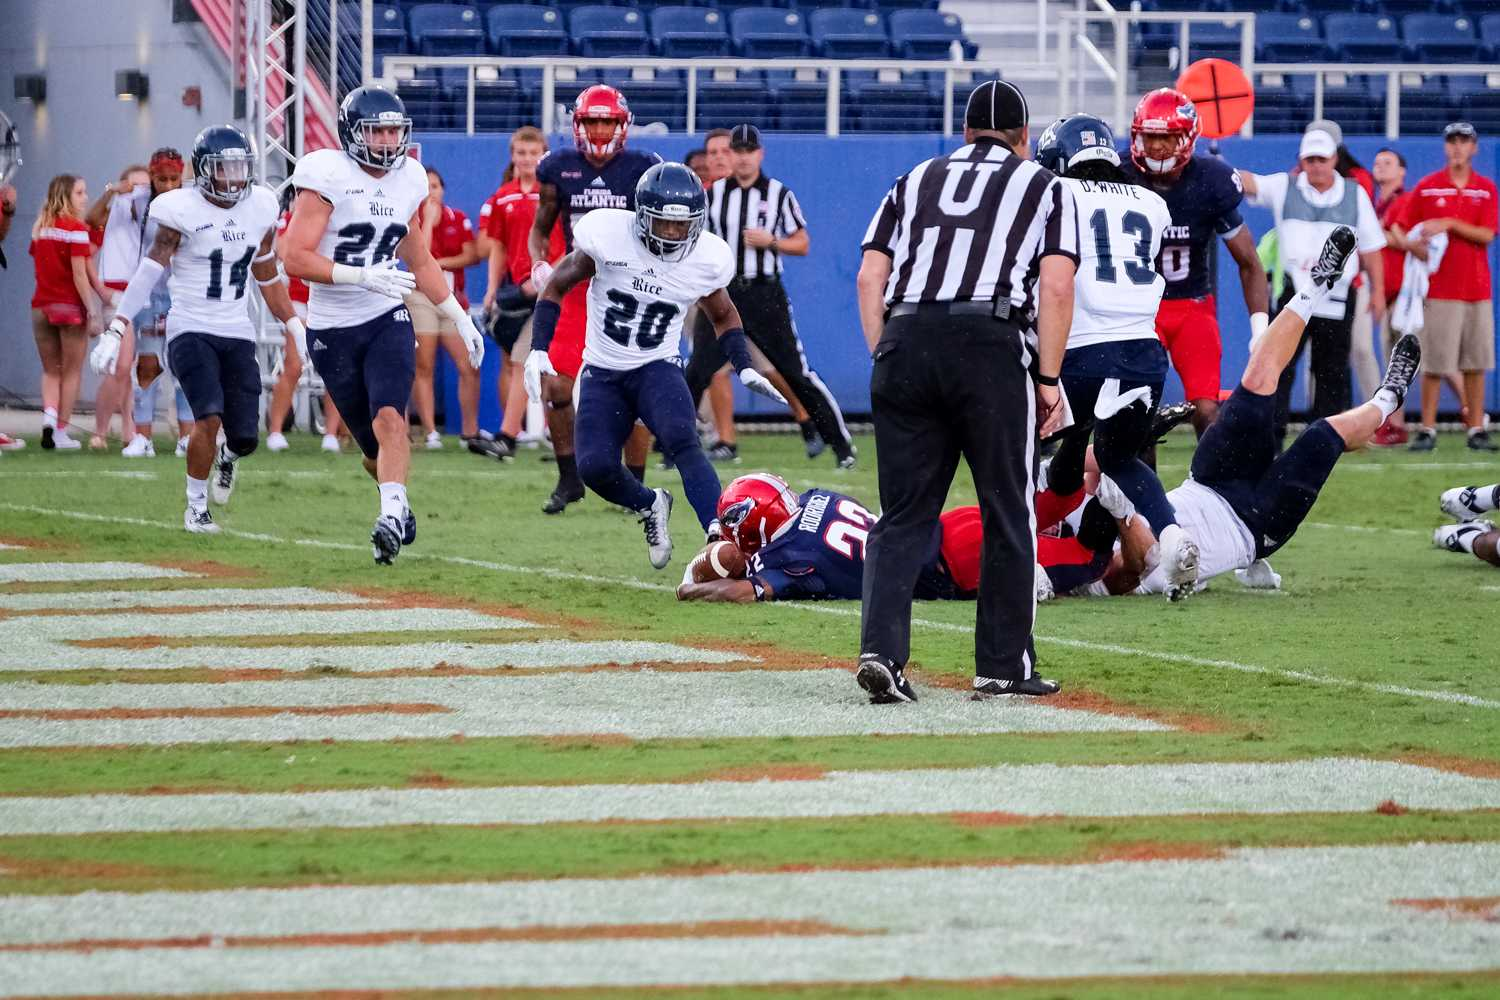 Freshman running back Trey Rodriguez (22) carries the ball into the endzone to score a nine yard touchdown, giving FAU a 26-14 with 13:50 remaining. The game was Rodriguez's first as an Owl, having been suspended for four previous games. Mohammed F Emran | Asst. Creative Director